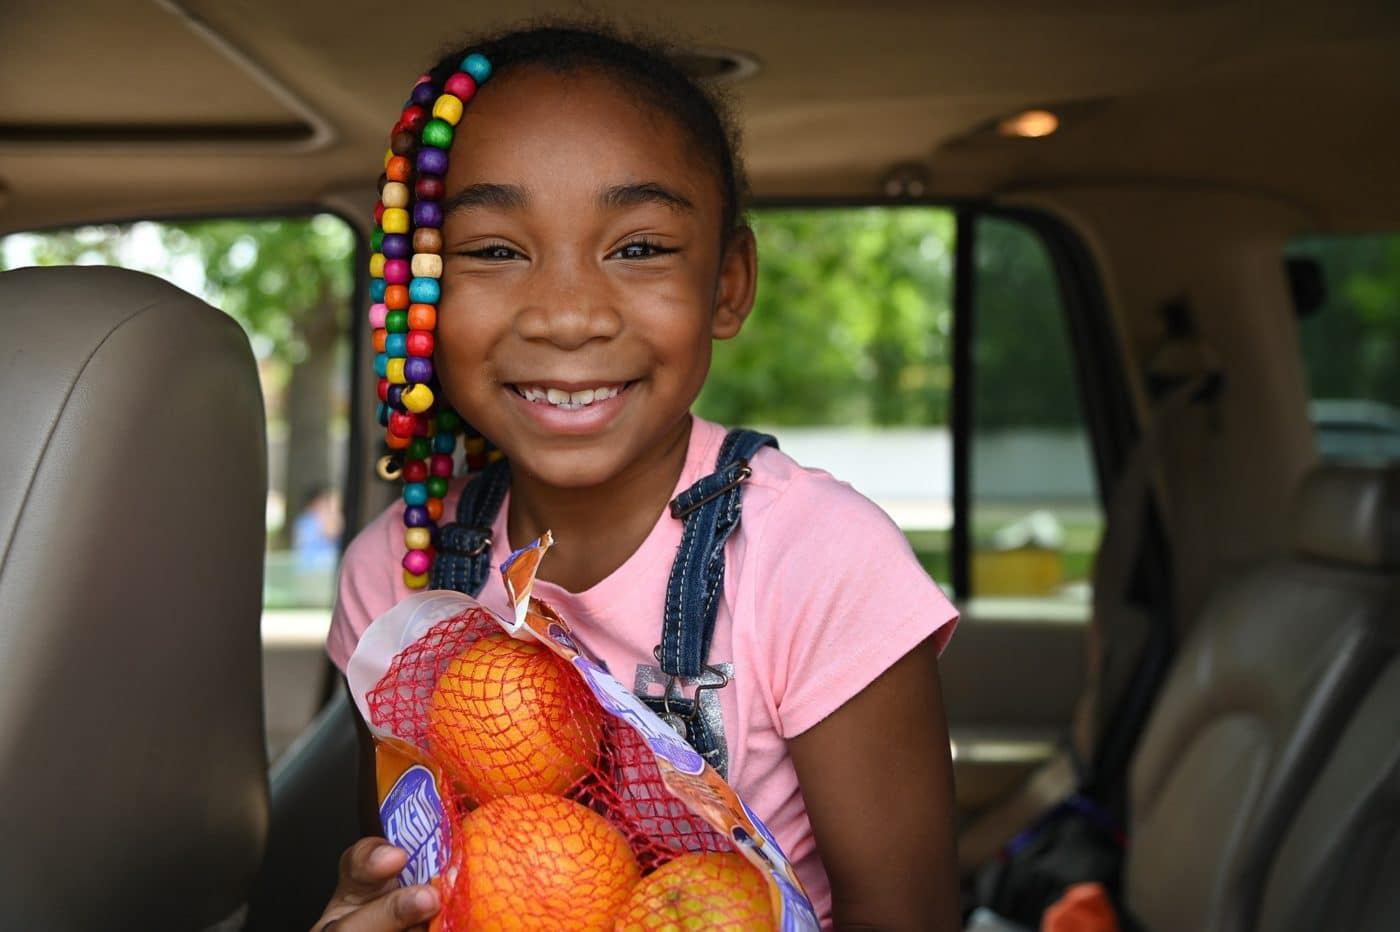 JaLisa's face lit up when she saw a bag of oranges loaded into her grandma's car at a Care and Share Food Bank's Mobile Food Pantry.